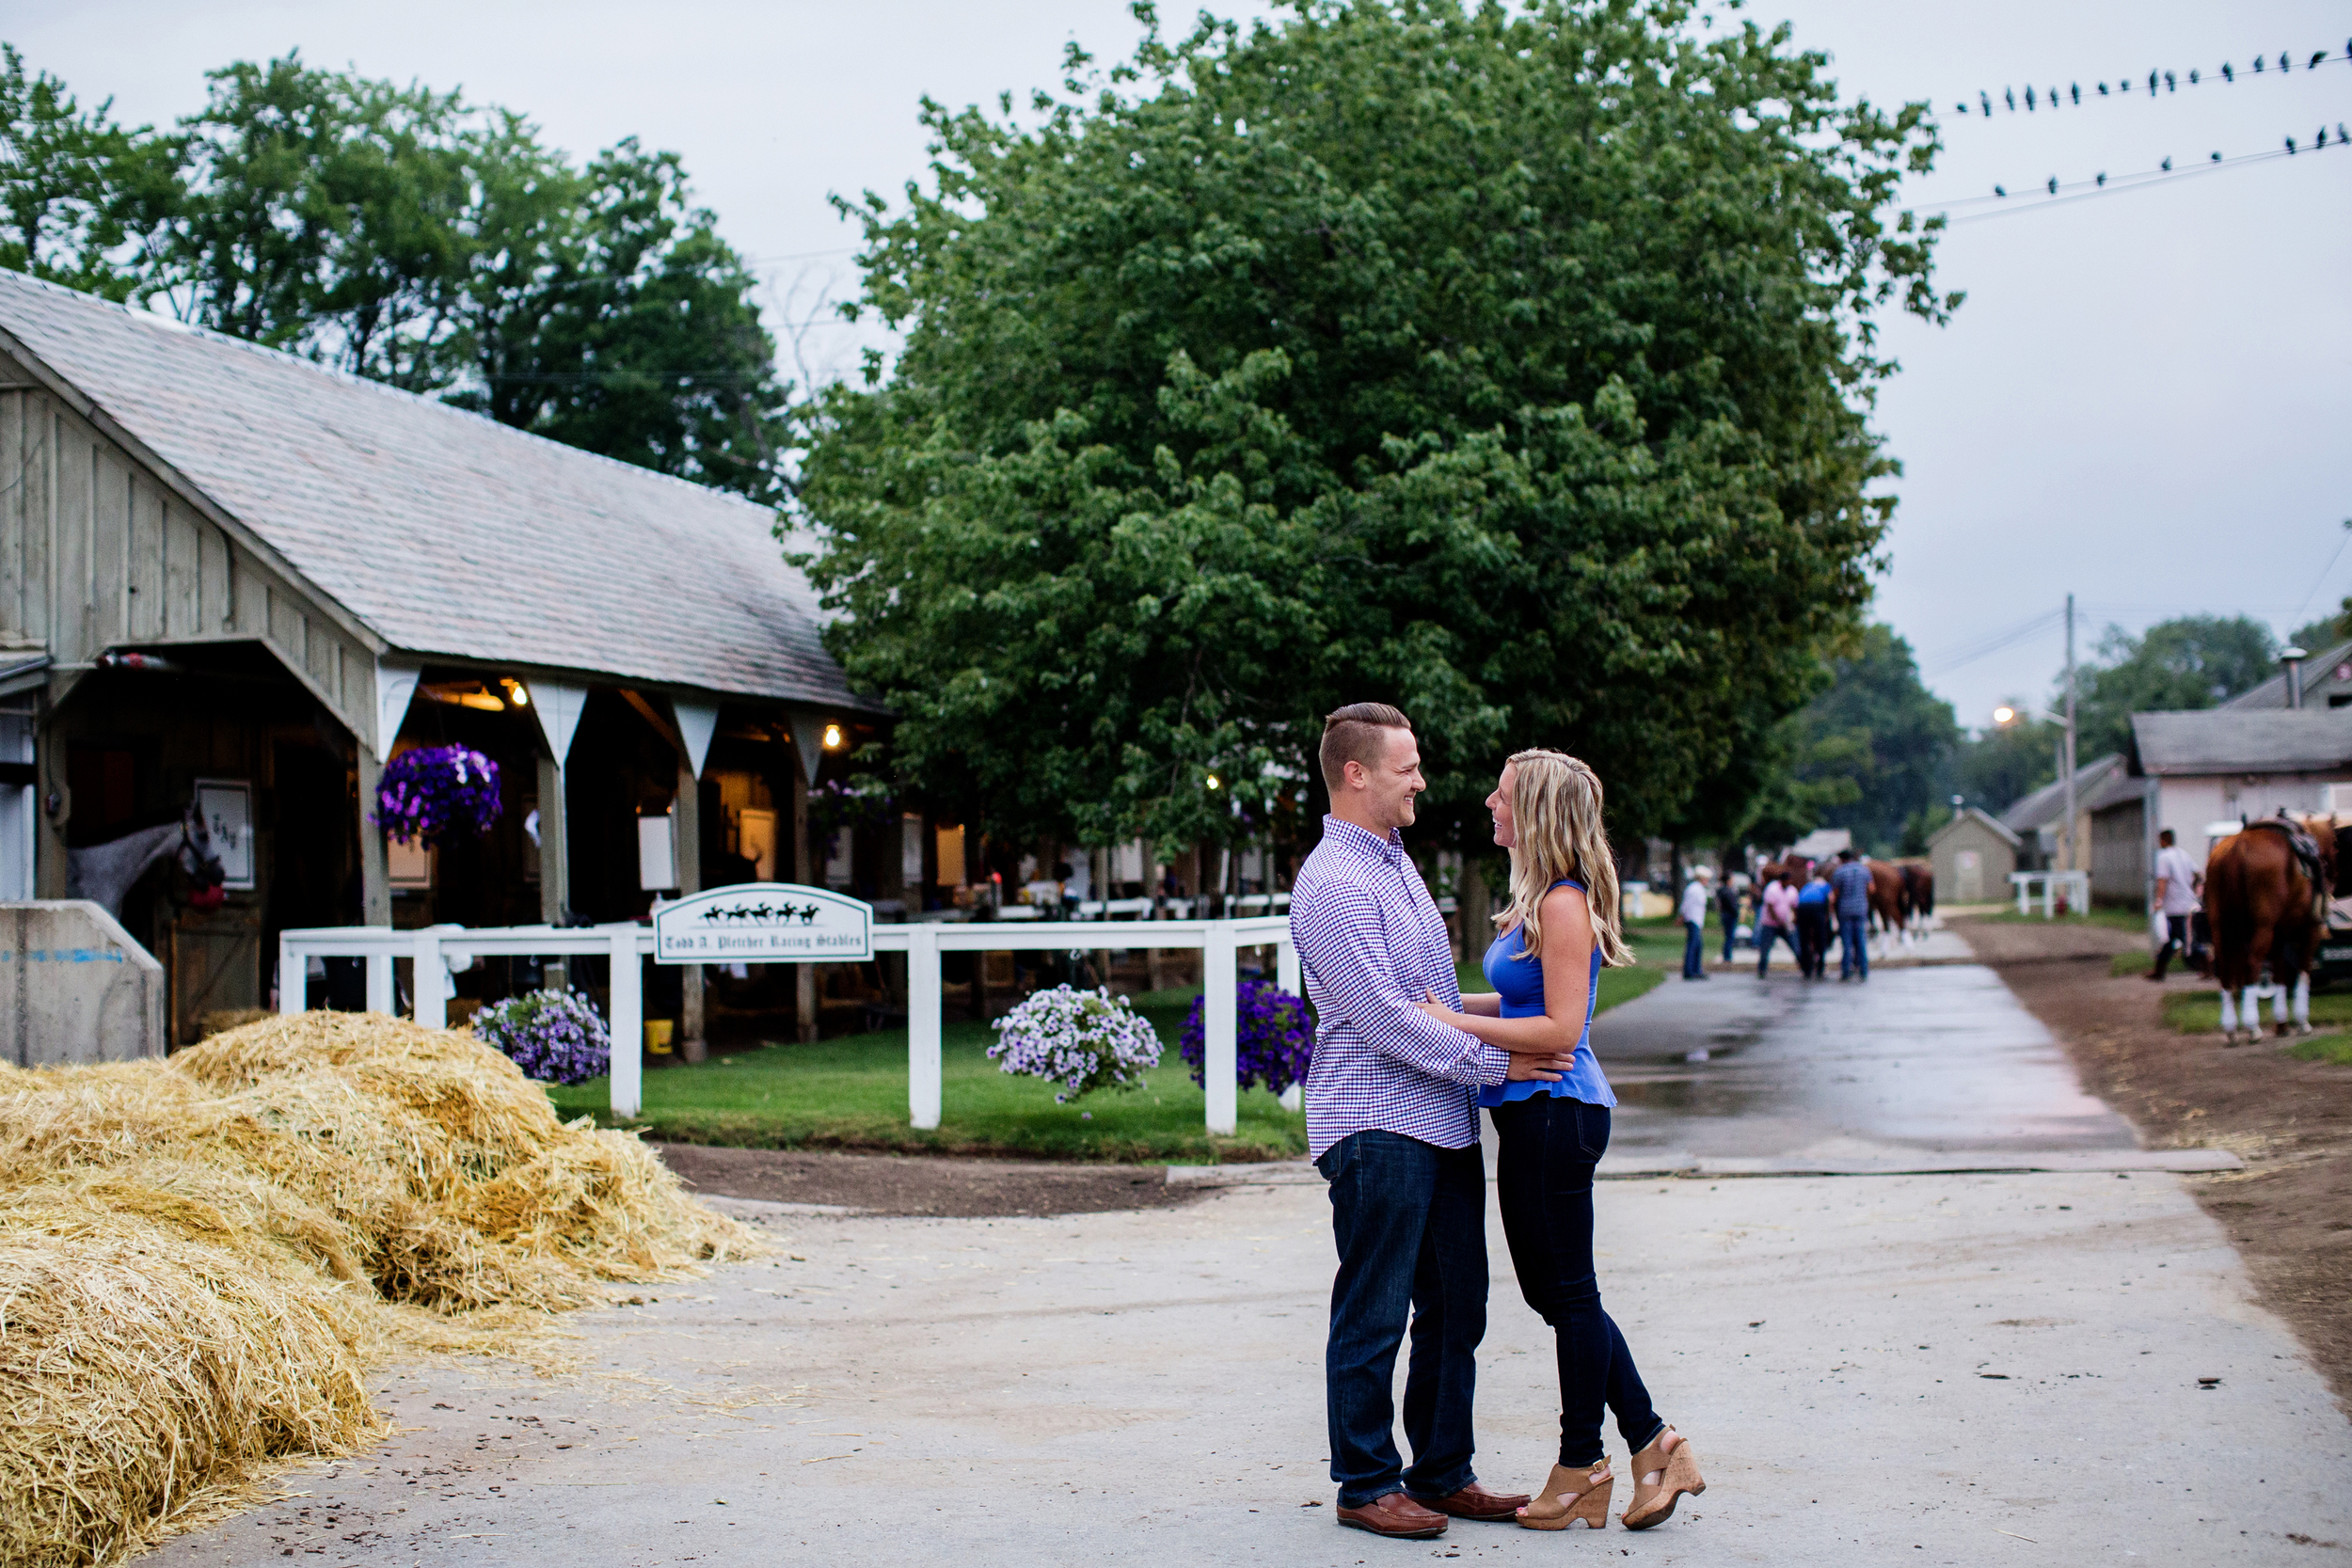 engagement photography saratoga race track05.jpg